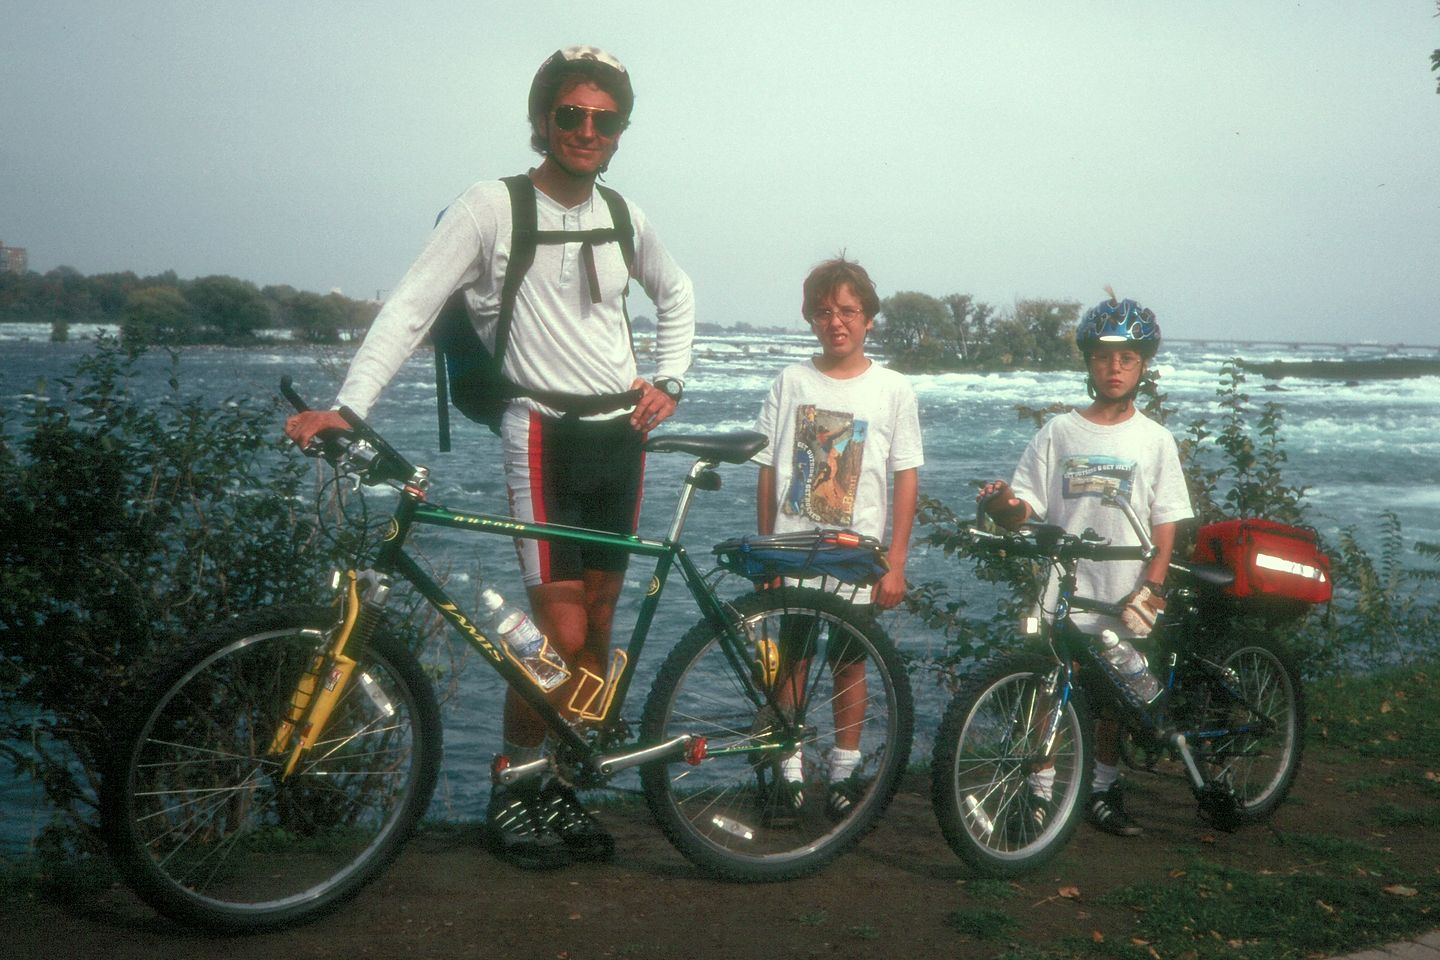 Herb and boys on bikes